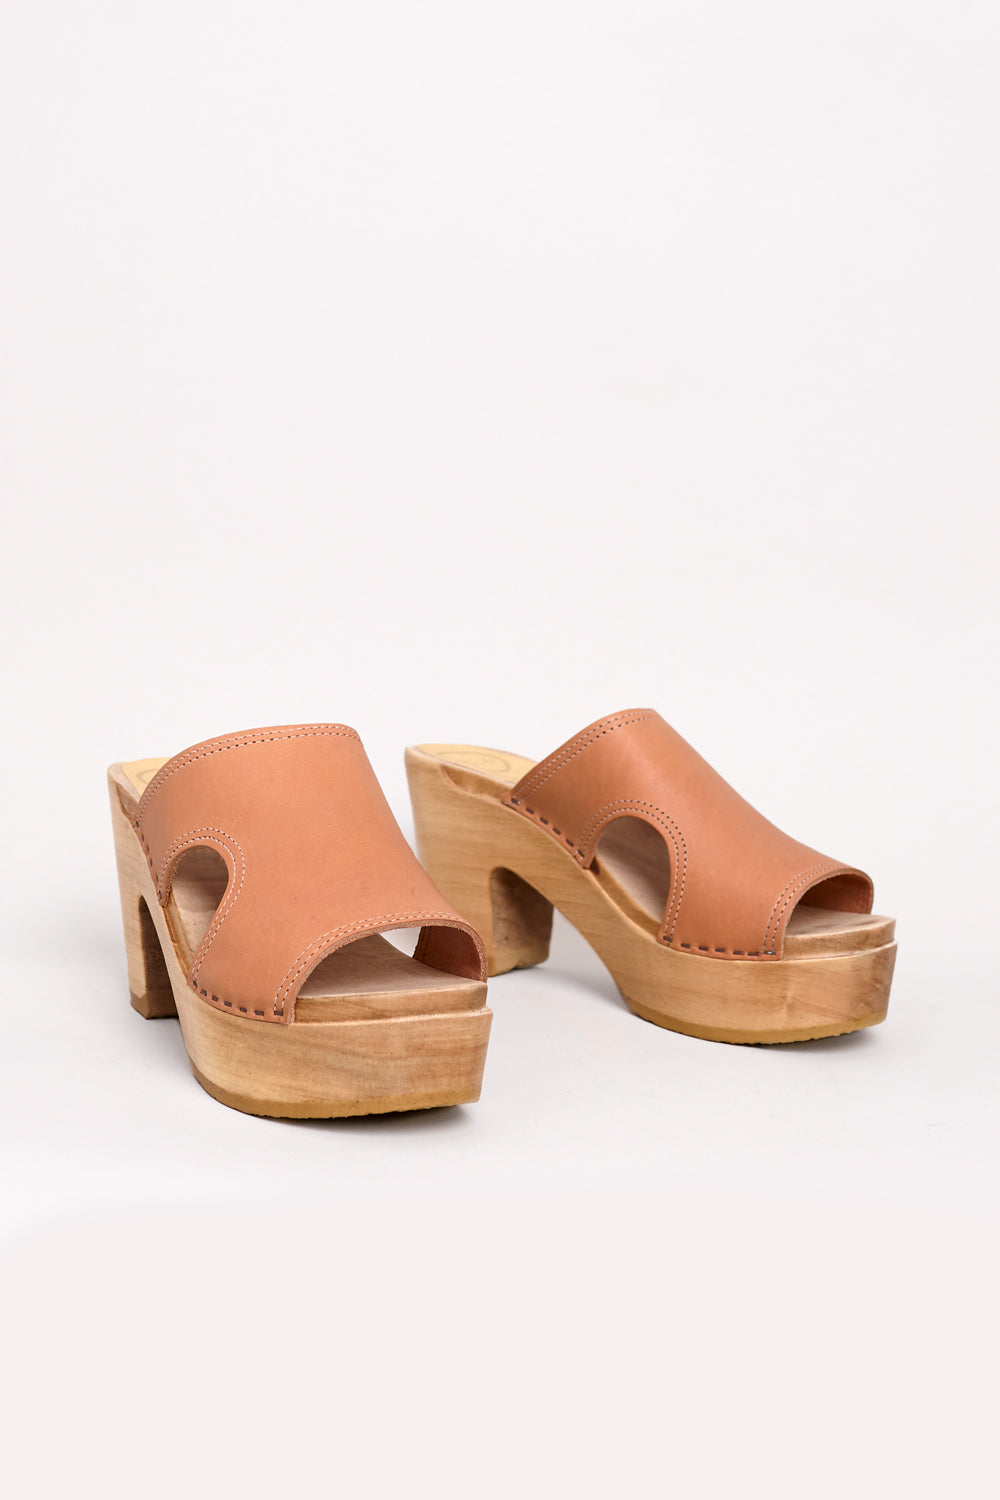 Alexis Naked Cut Out Platform